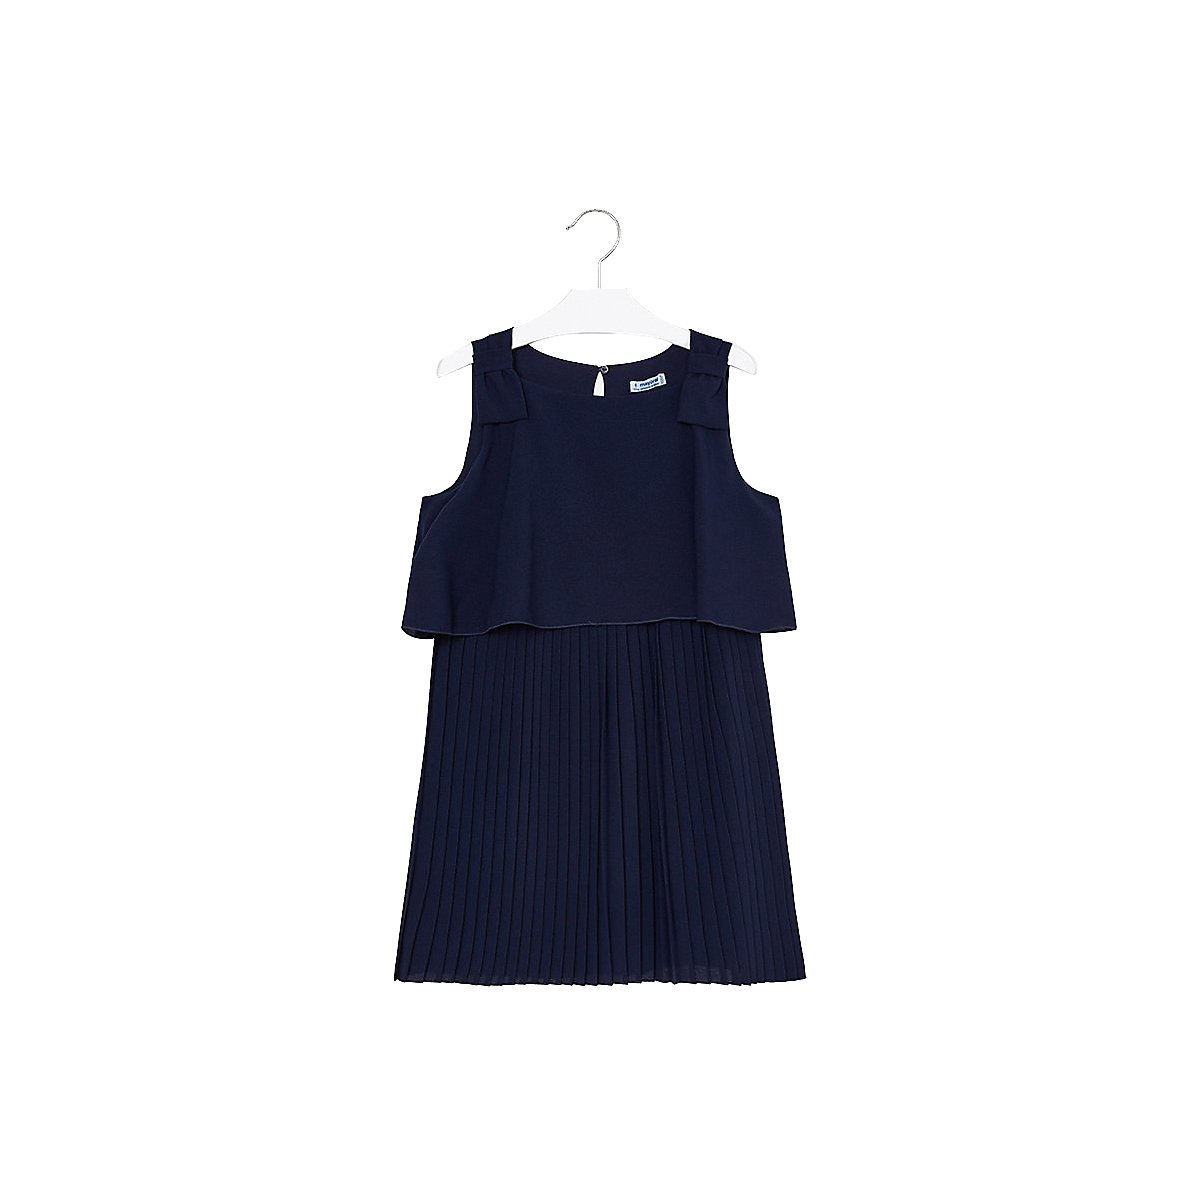 MAYORAL Dresses 10685120 Girl Children fitted pleated skirt Blue Polyester Casual Solid Knee-Length Sleeveless Sleeve